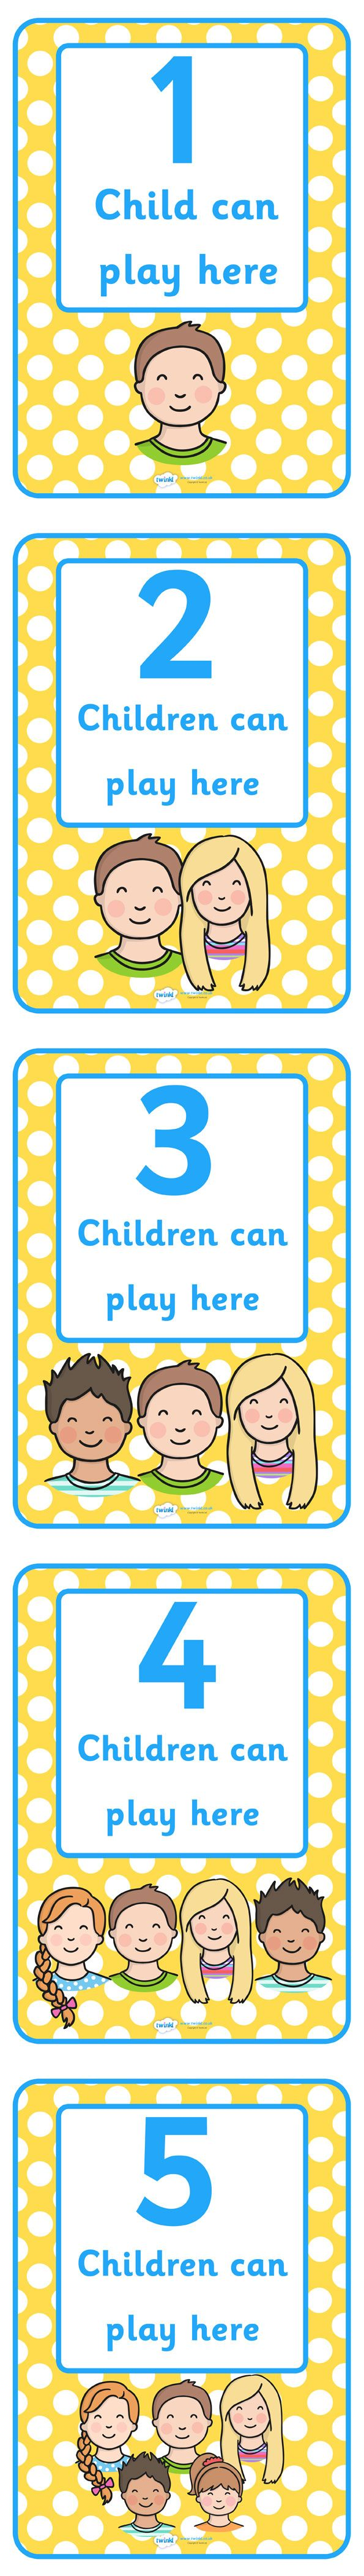 Twinkl Resources >> How Many Can Play Here Display Posters  >> Thousands of printable primary teaching resources for EYFS, KS1, KS2 and beyond! display, classroom, poster, classroom area display, child self management